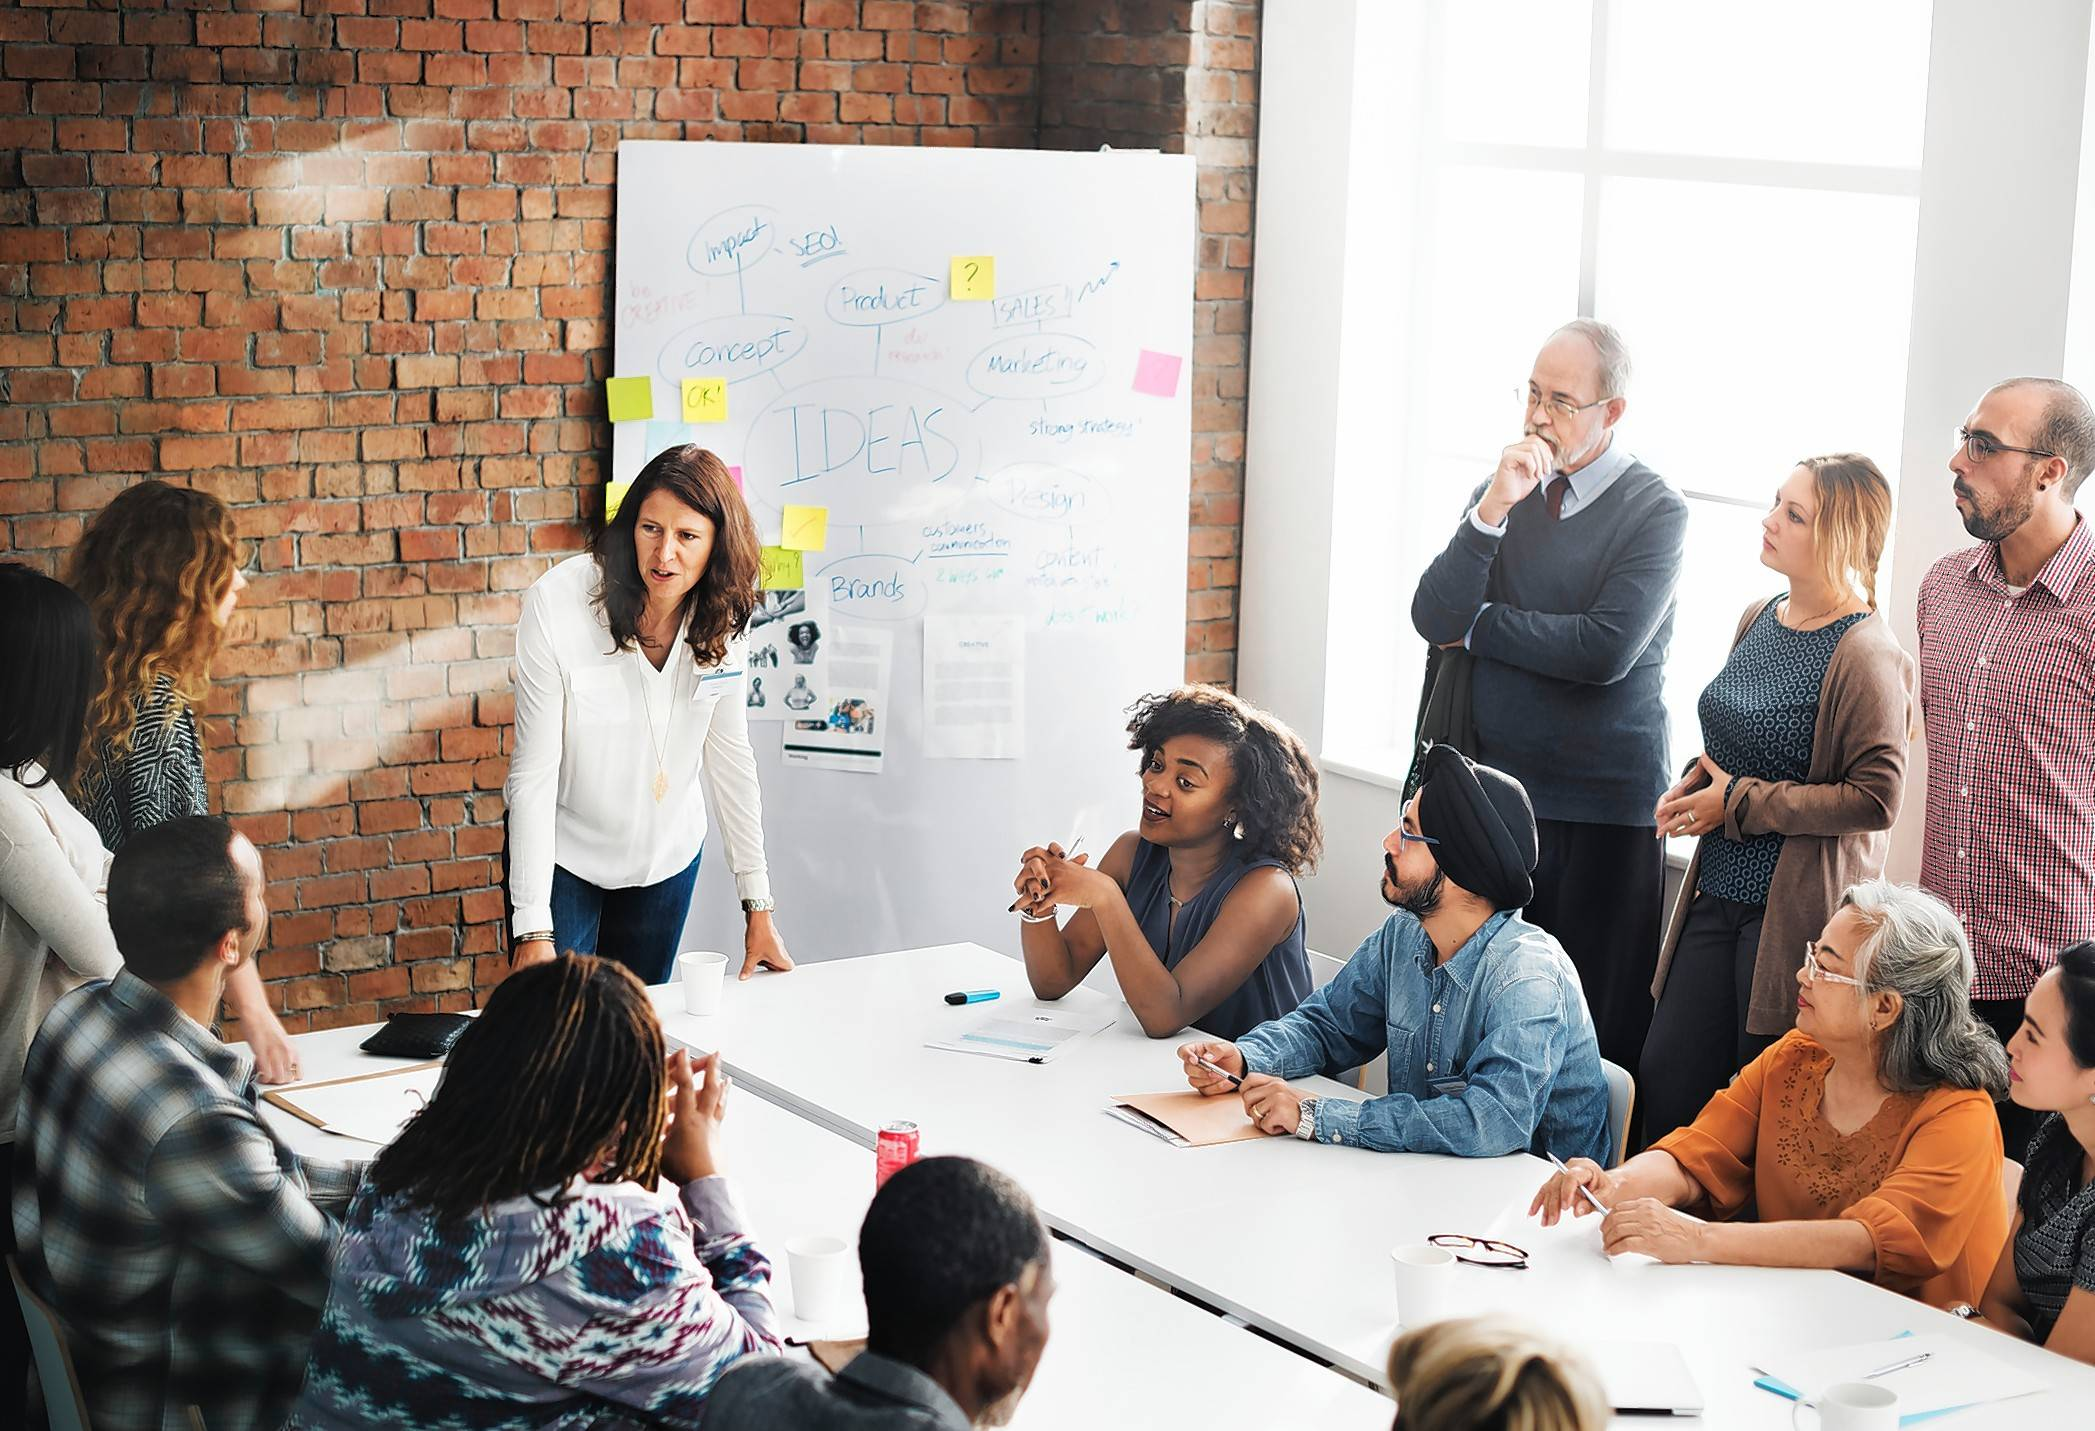 High-performing companies know engaged employees means happier employees and an improved bottom line. And to engage employees, they must create a culture of healthy communication within their organizations.